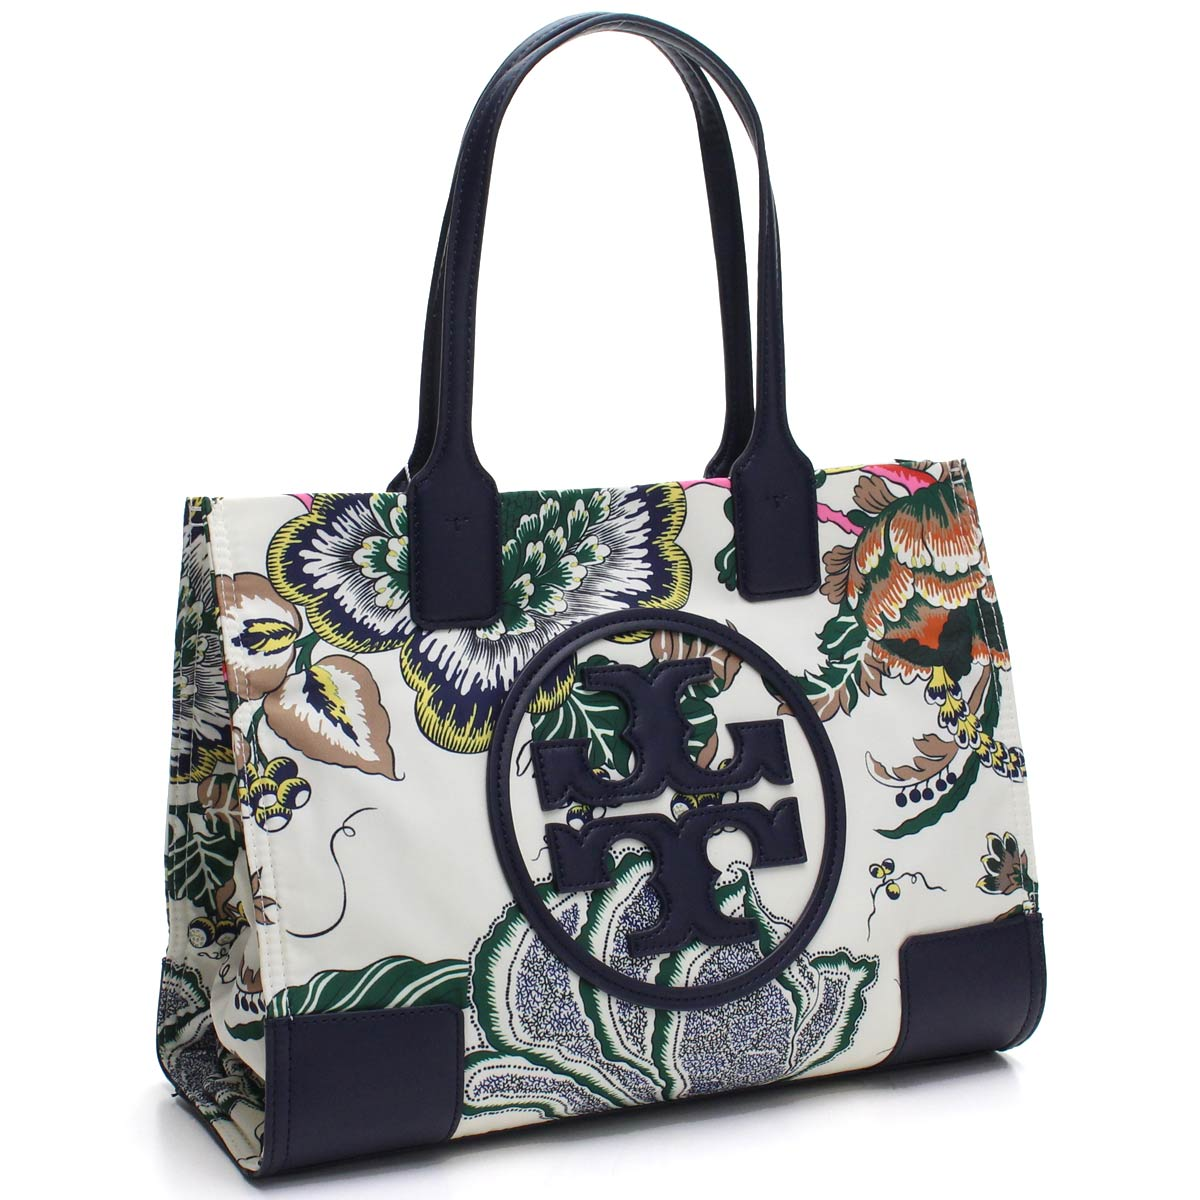 77fbc061a89 Bighit The total brand wholesale  Tolly Birch TORY BURCH ELLA PRINTED ボタニカル  pattern print gills Thoth tote bag 52463 162 IVORY HAPPY TIMES white system  ...